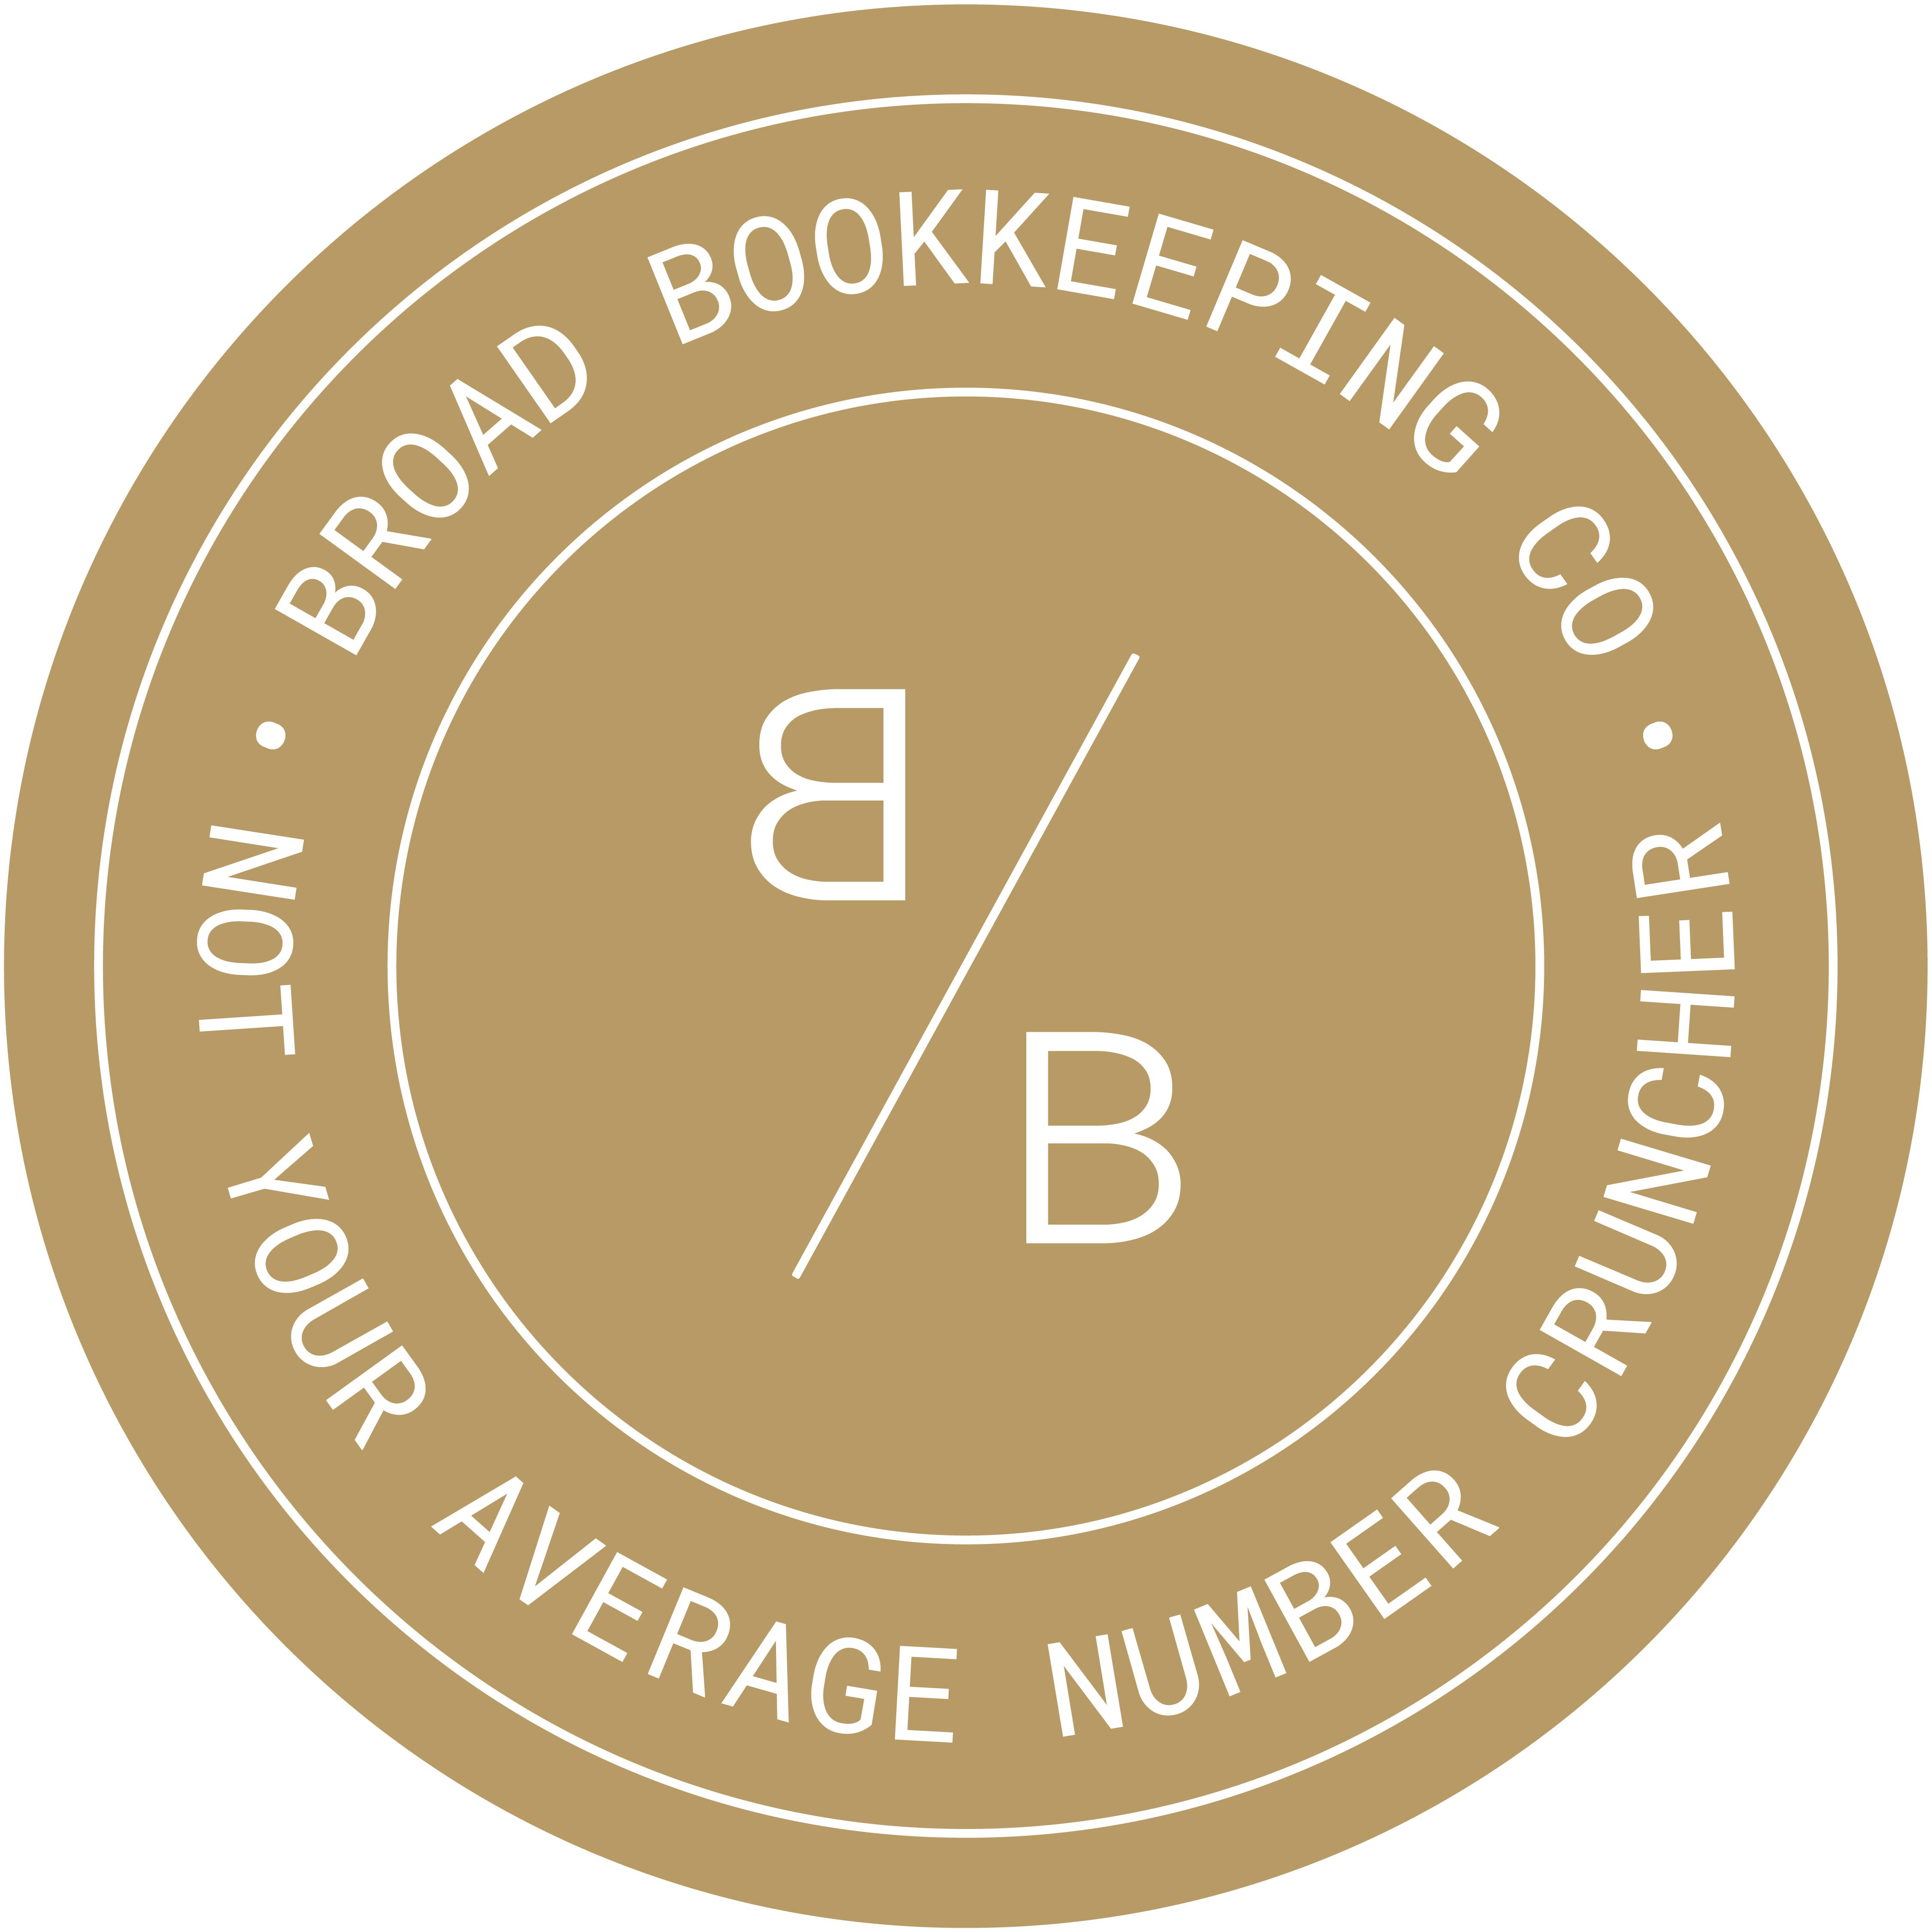 broad-bookkeeping.png